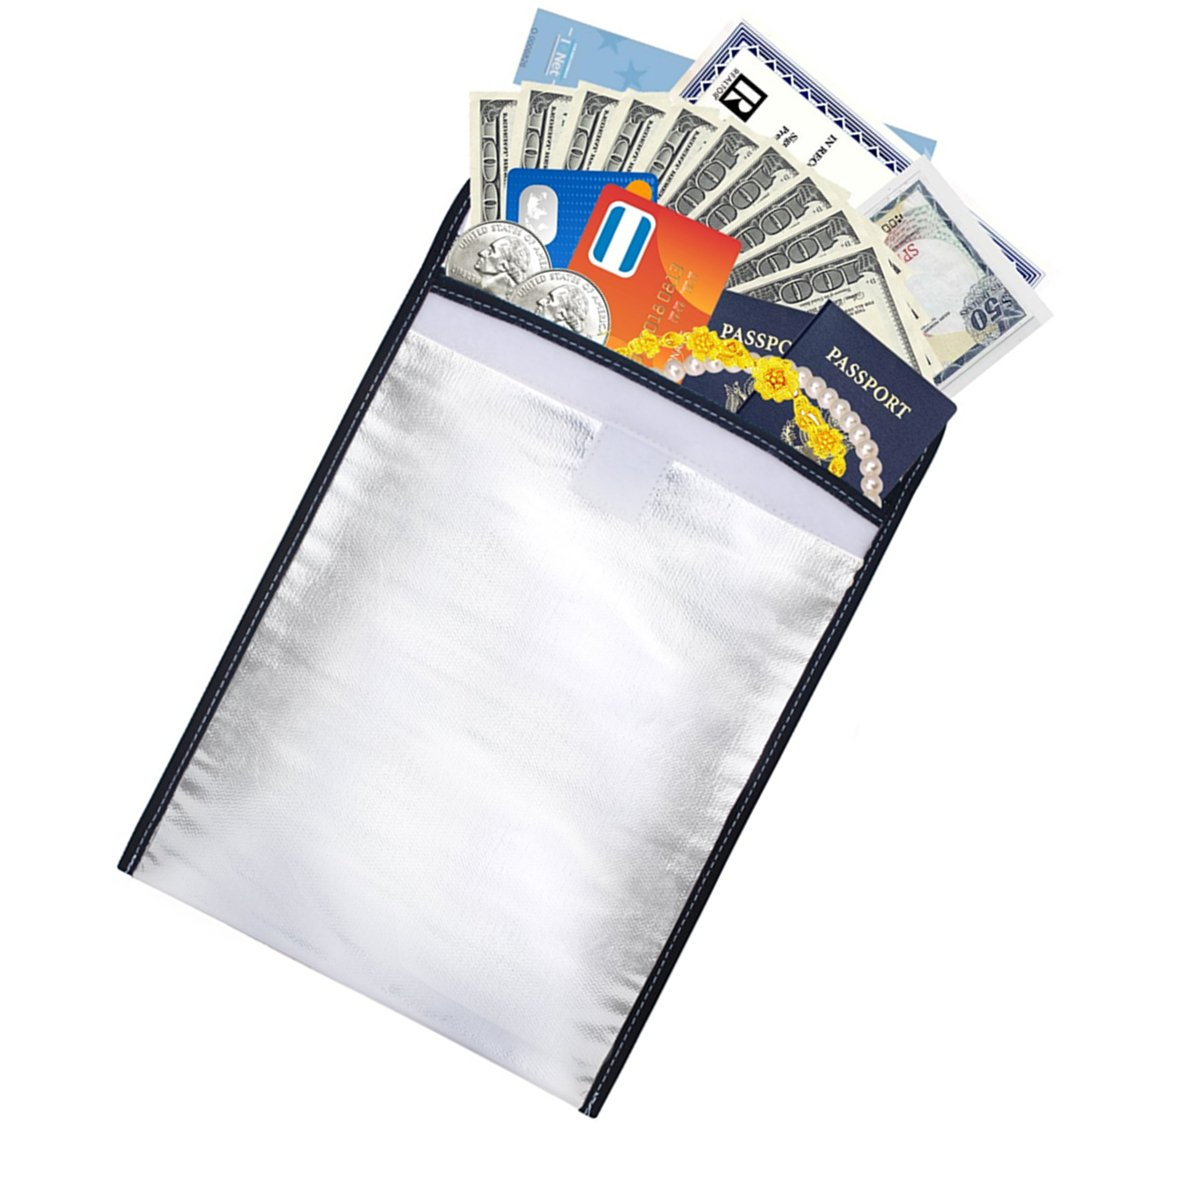 Fireproof Safe Bag,Winloop Non Itchy Aluminum Foil Coated Waterproof Cash Document Bag Envelope Pouch with Velcro for Money, ID Card, Passport, LIPO Batteries, Jewelry and Valuables(13''10'') (Silver)